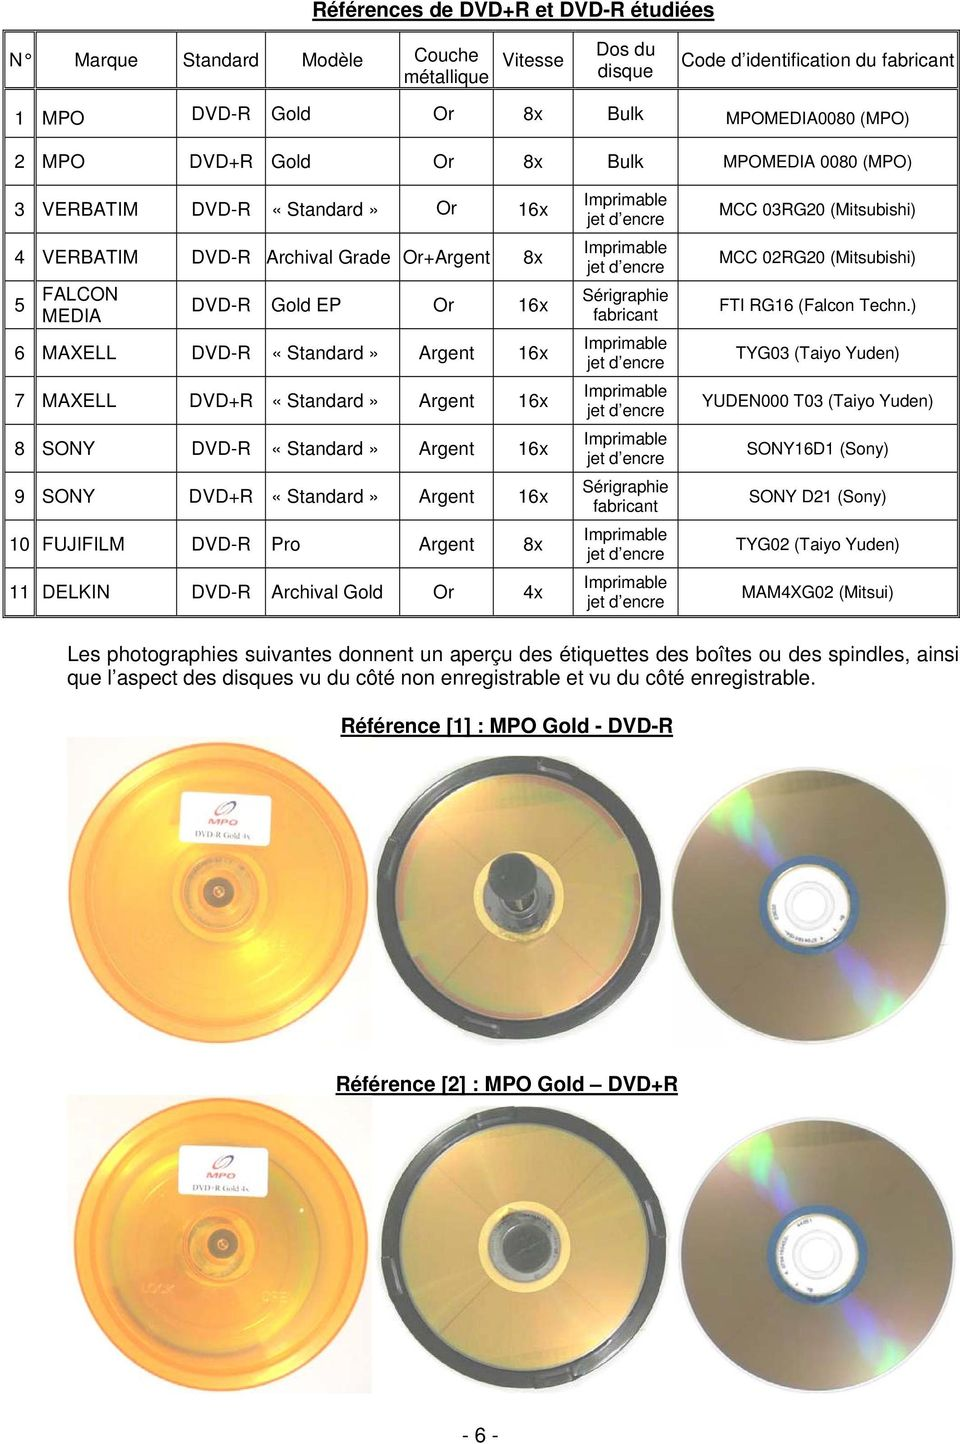 «Standard» Argent 16x 8 SONY DVD-R «Standard» Argent 16x 9 SONY DVD+R «Standard» Argent 16x 10 FUJIFILM DVD-R Pro Argent 11 DELKIN DVD-R Archival Gold Or Imprimable jet d encre Imprimable jet d encre